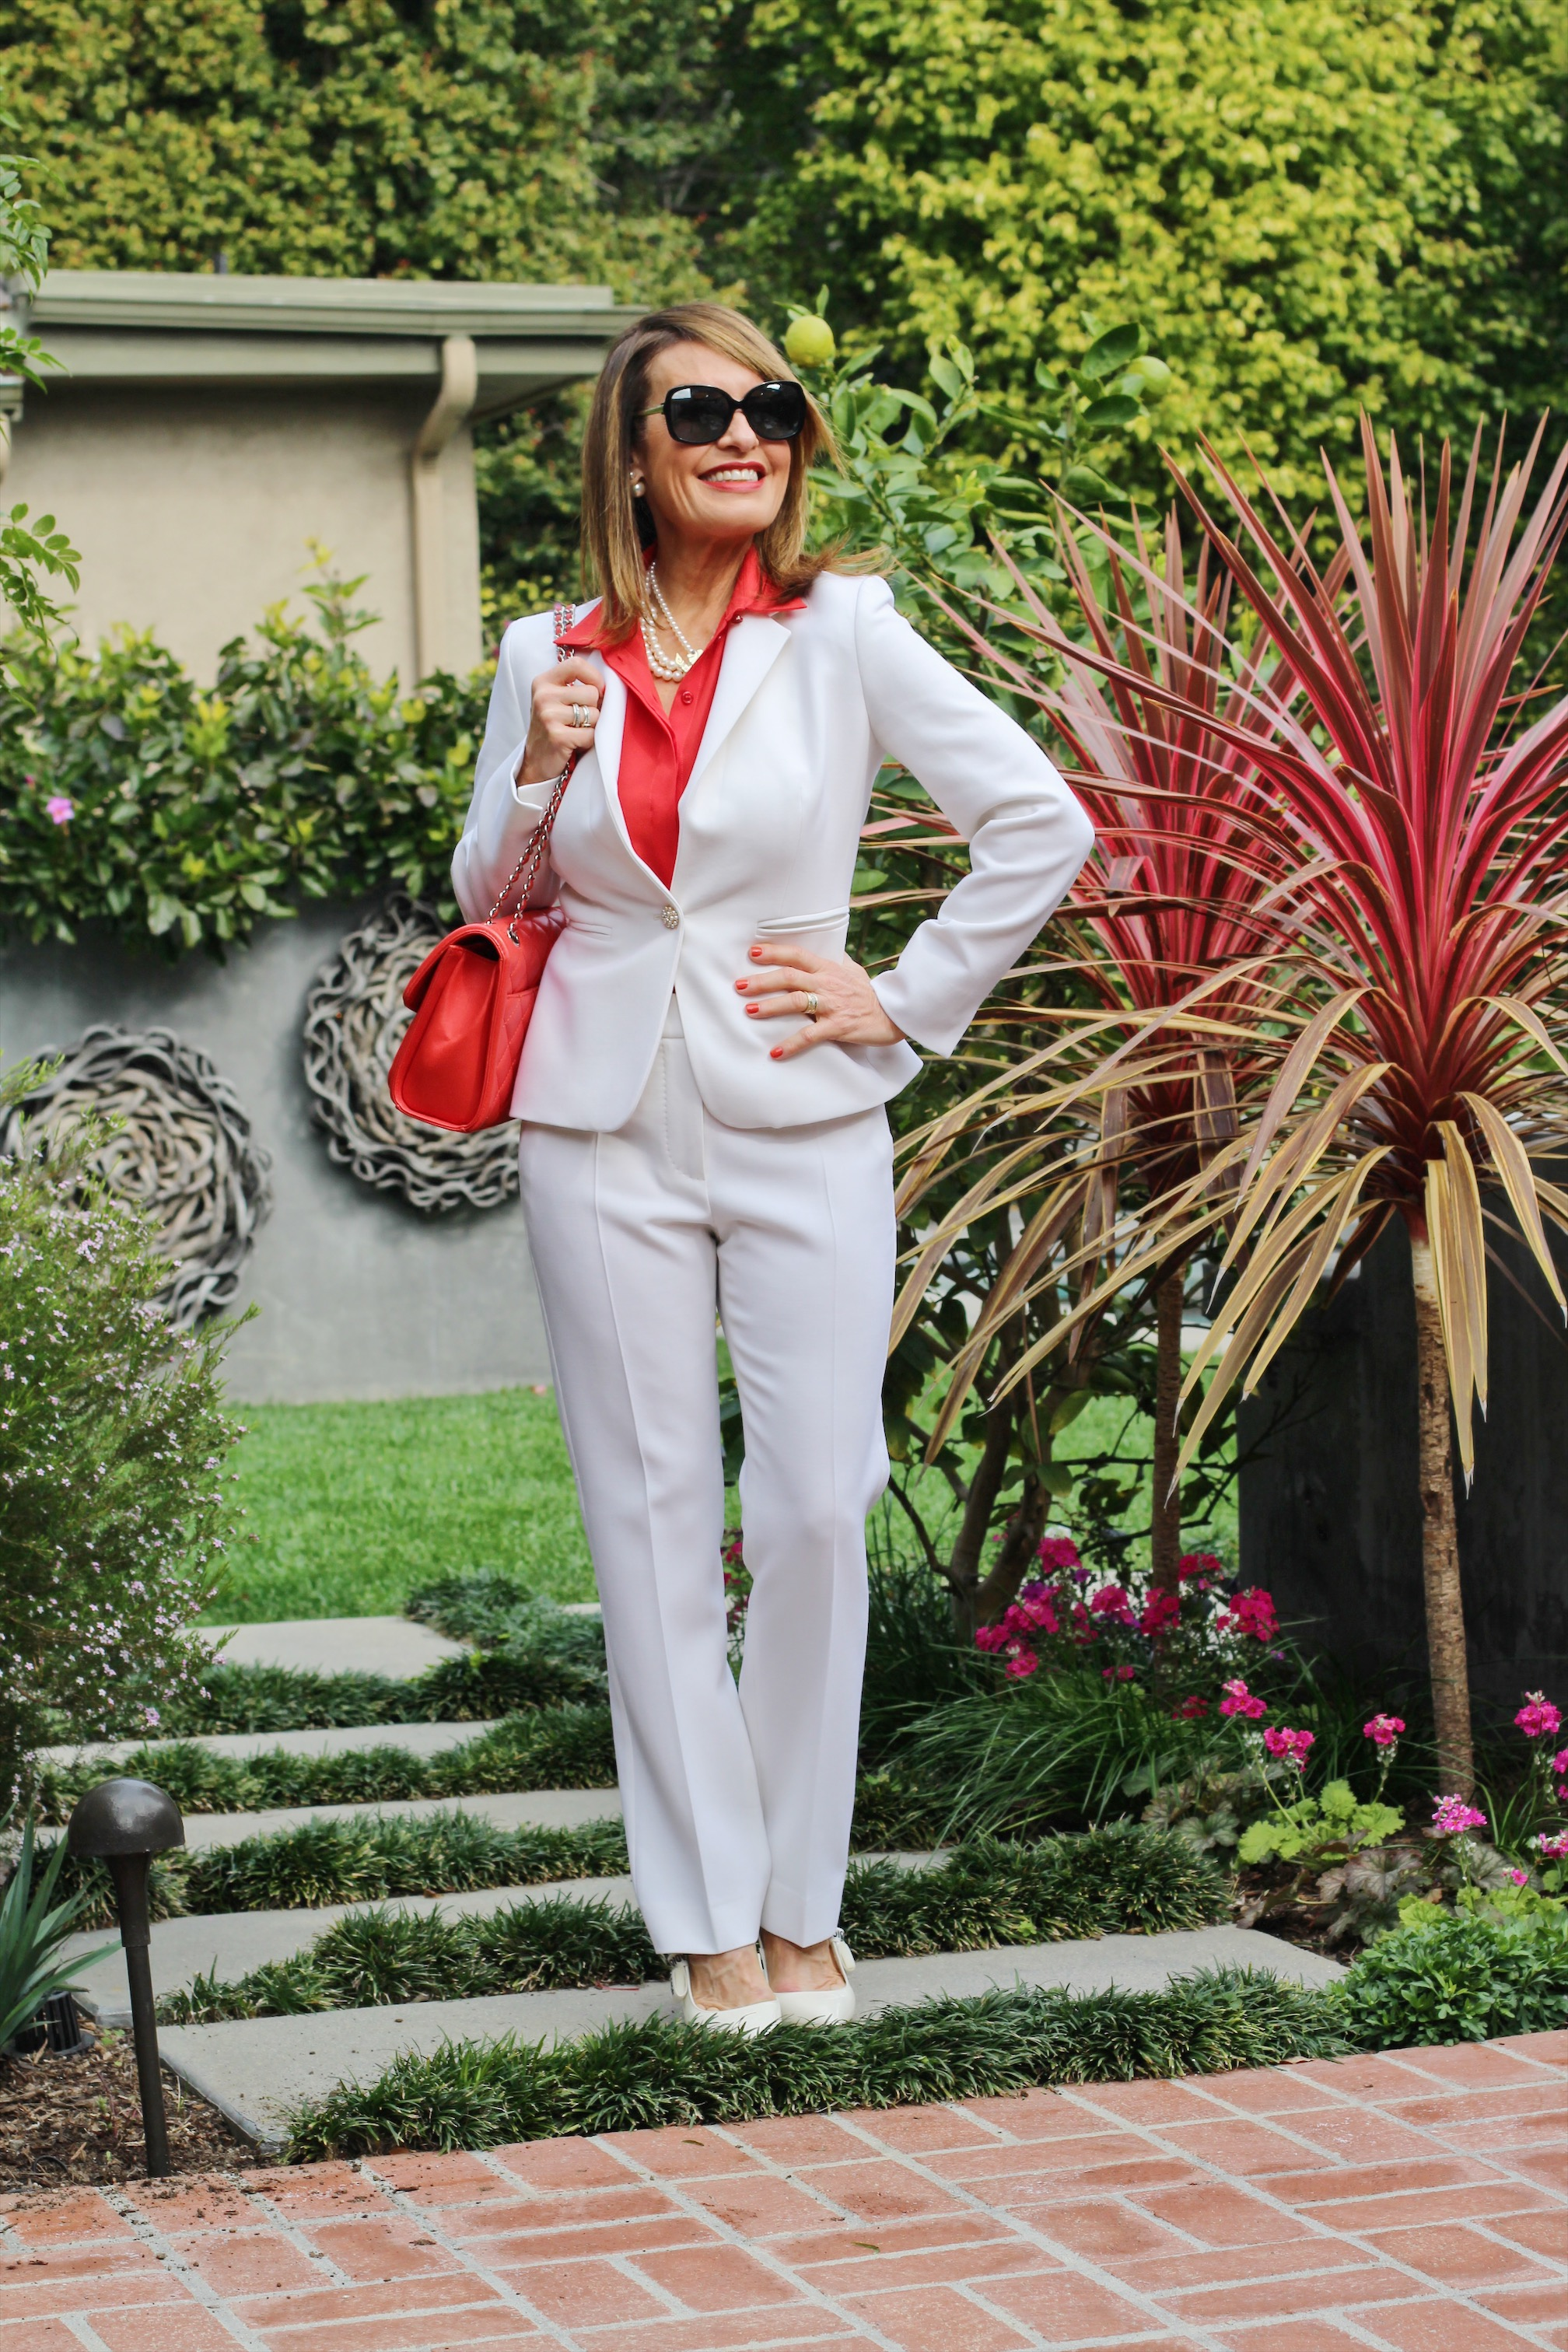 Max Mara    jacket    and    pants   ,    Armani Exchange blouse   , Maui Jim shades, Dior slingbacks, Chanel Handbag, Christian Dior tribal earrings, China Pearl pearl necklace.